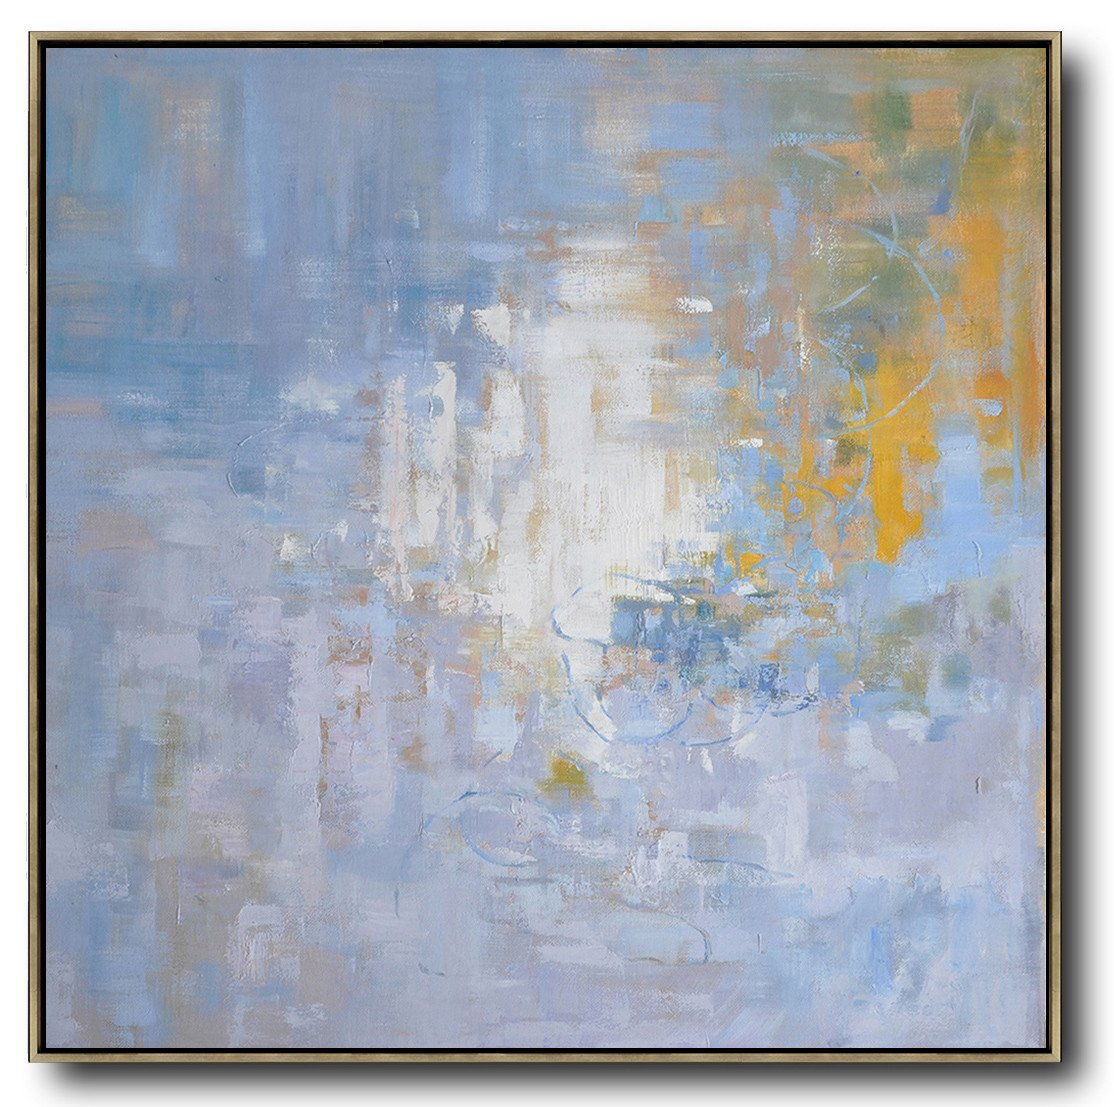 Abstract Painting Extra Large Canvas Art,Oversized Abstract Landscape Oil Painting,Giant Canvas Wall Art,Blue,Yellow,White.etc